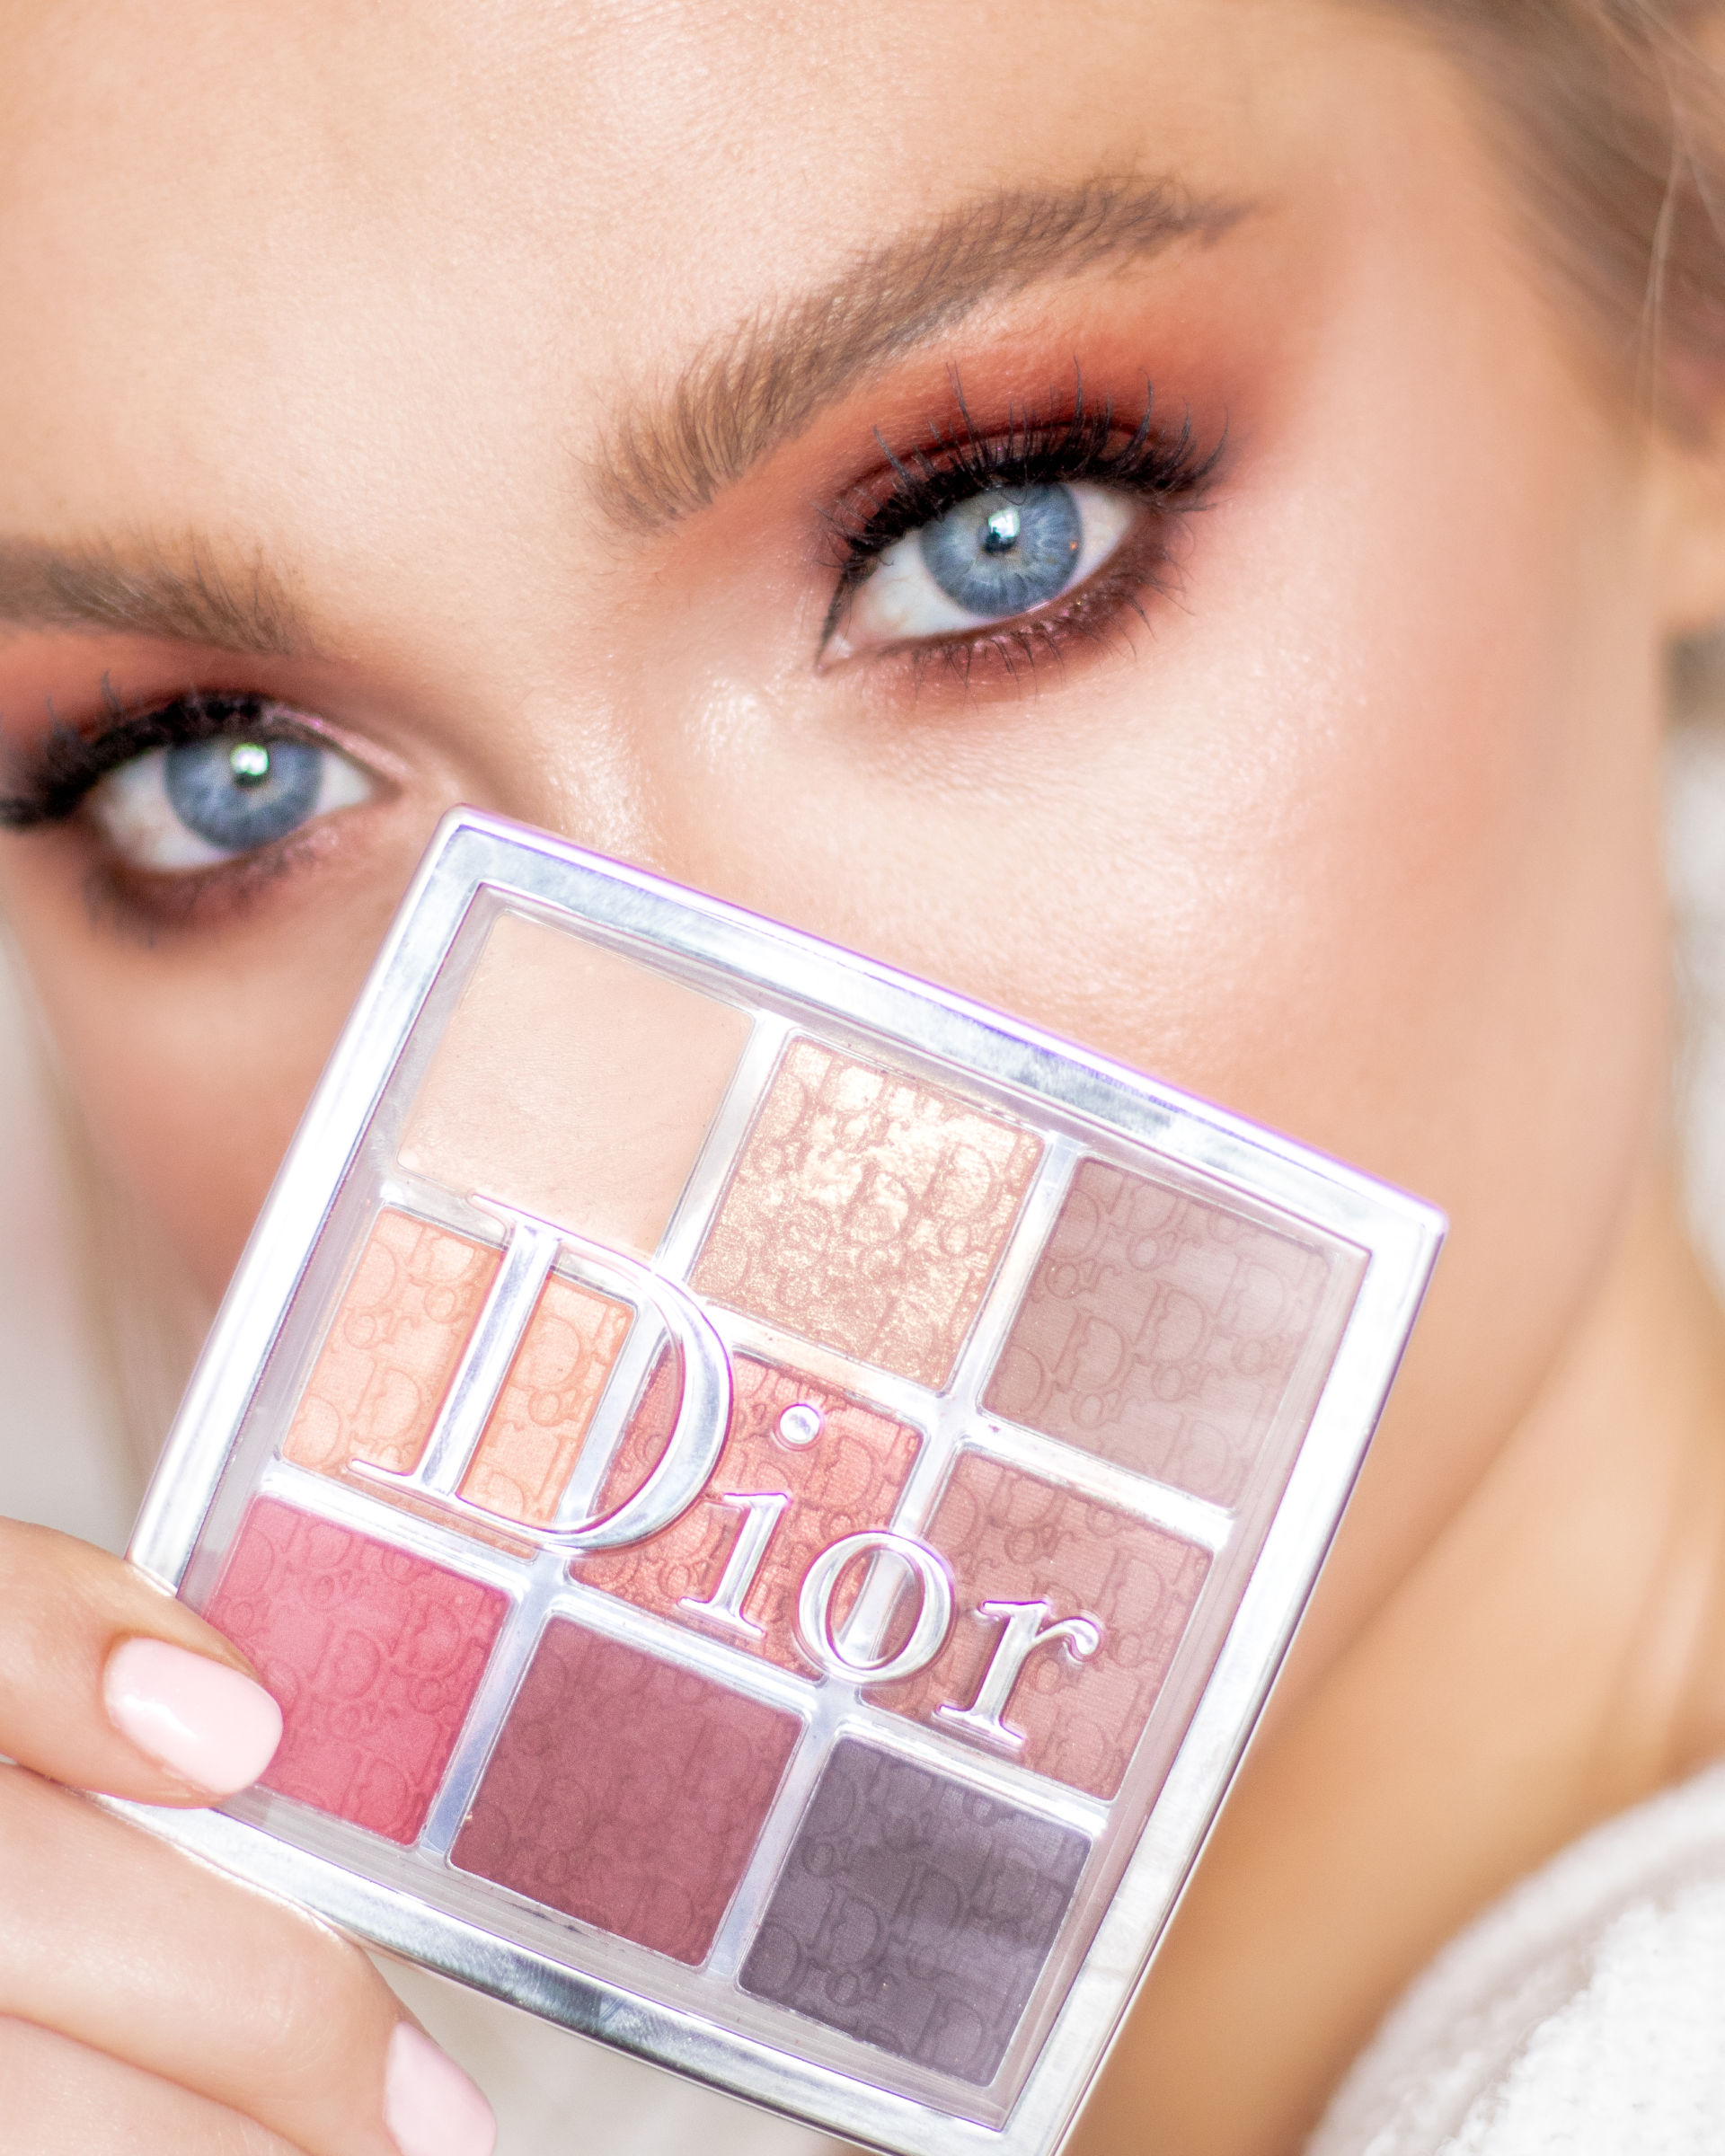 Dior Amber Neutrals Eye and Product Shot-2